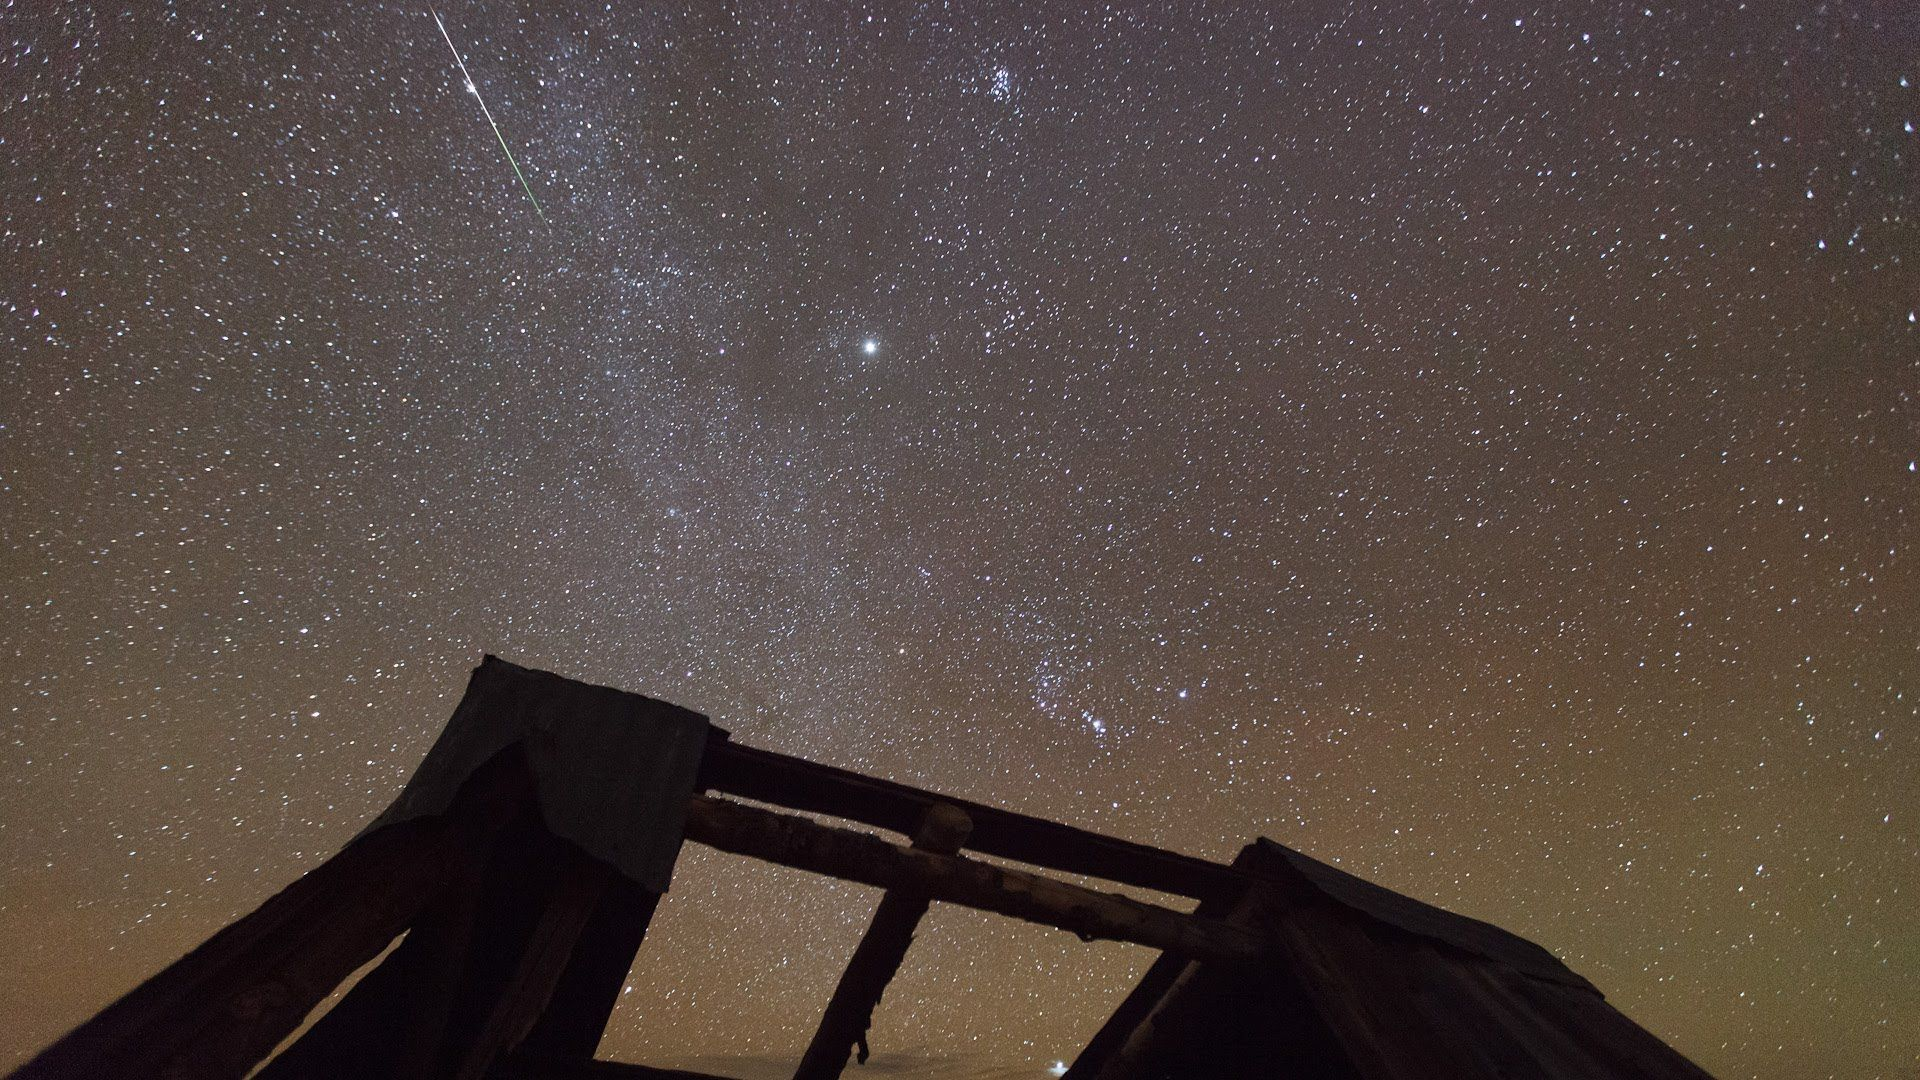 Orionid Meteor Shower Actually Footage Begins At 2 18